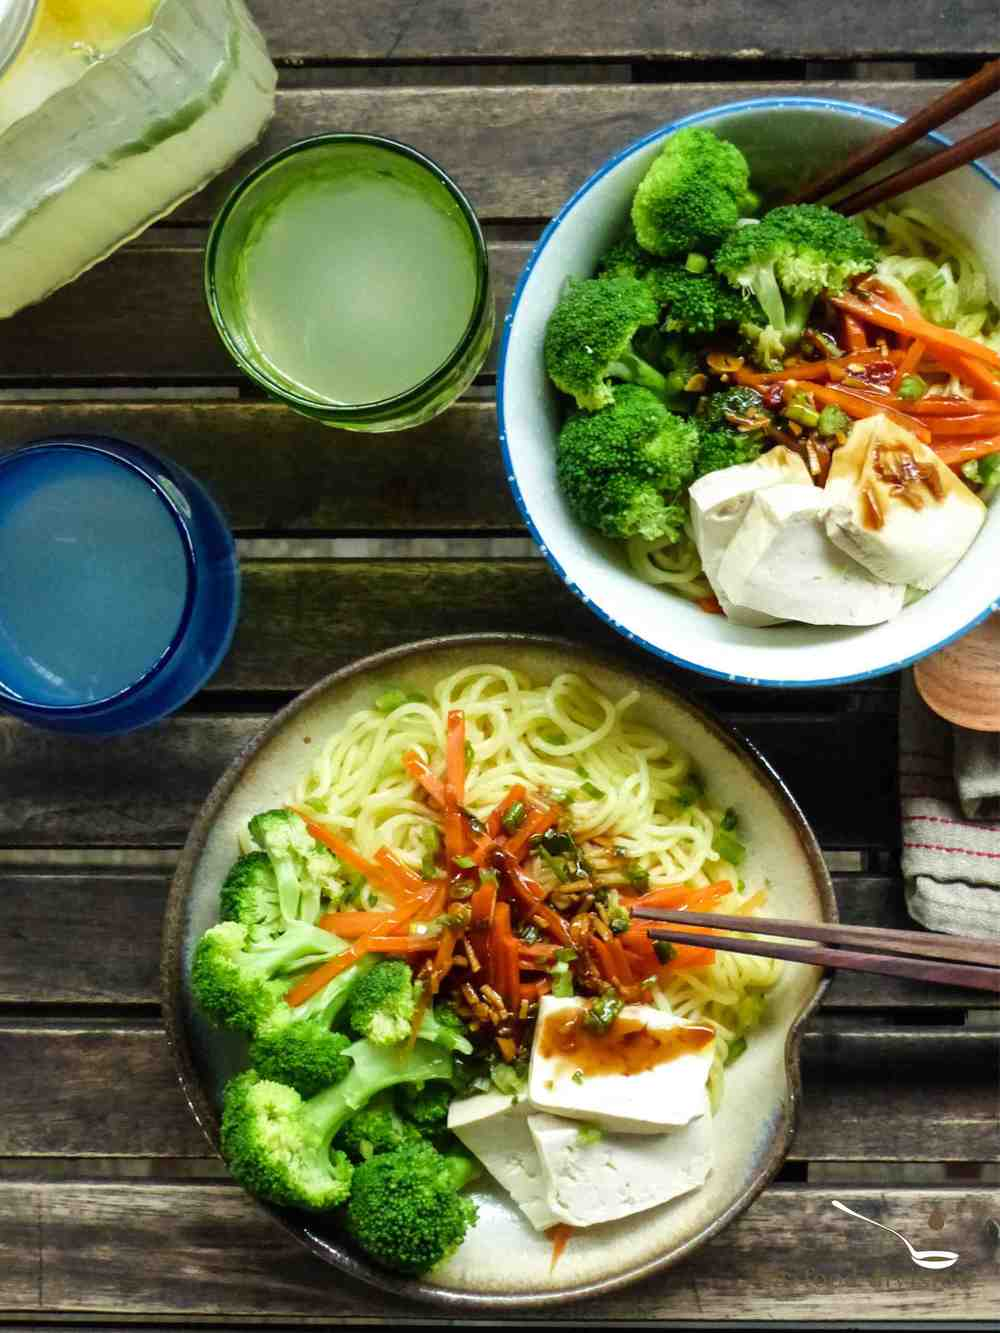 This simple lo mein dish is packed with goodies for our body, mind, and soul!